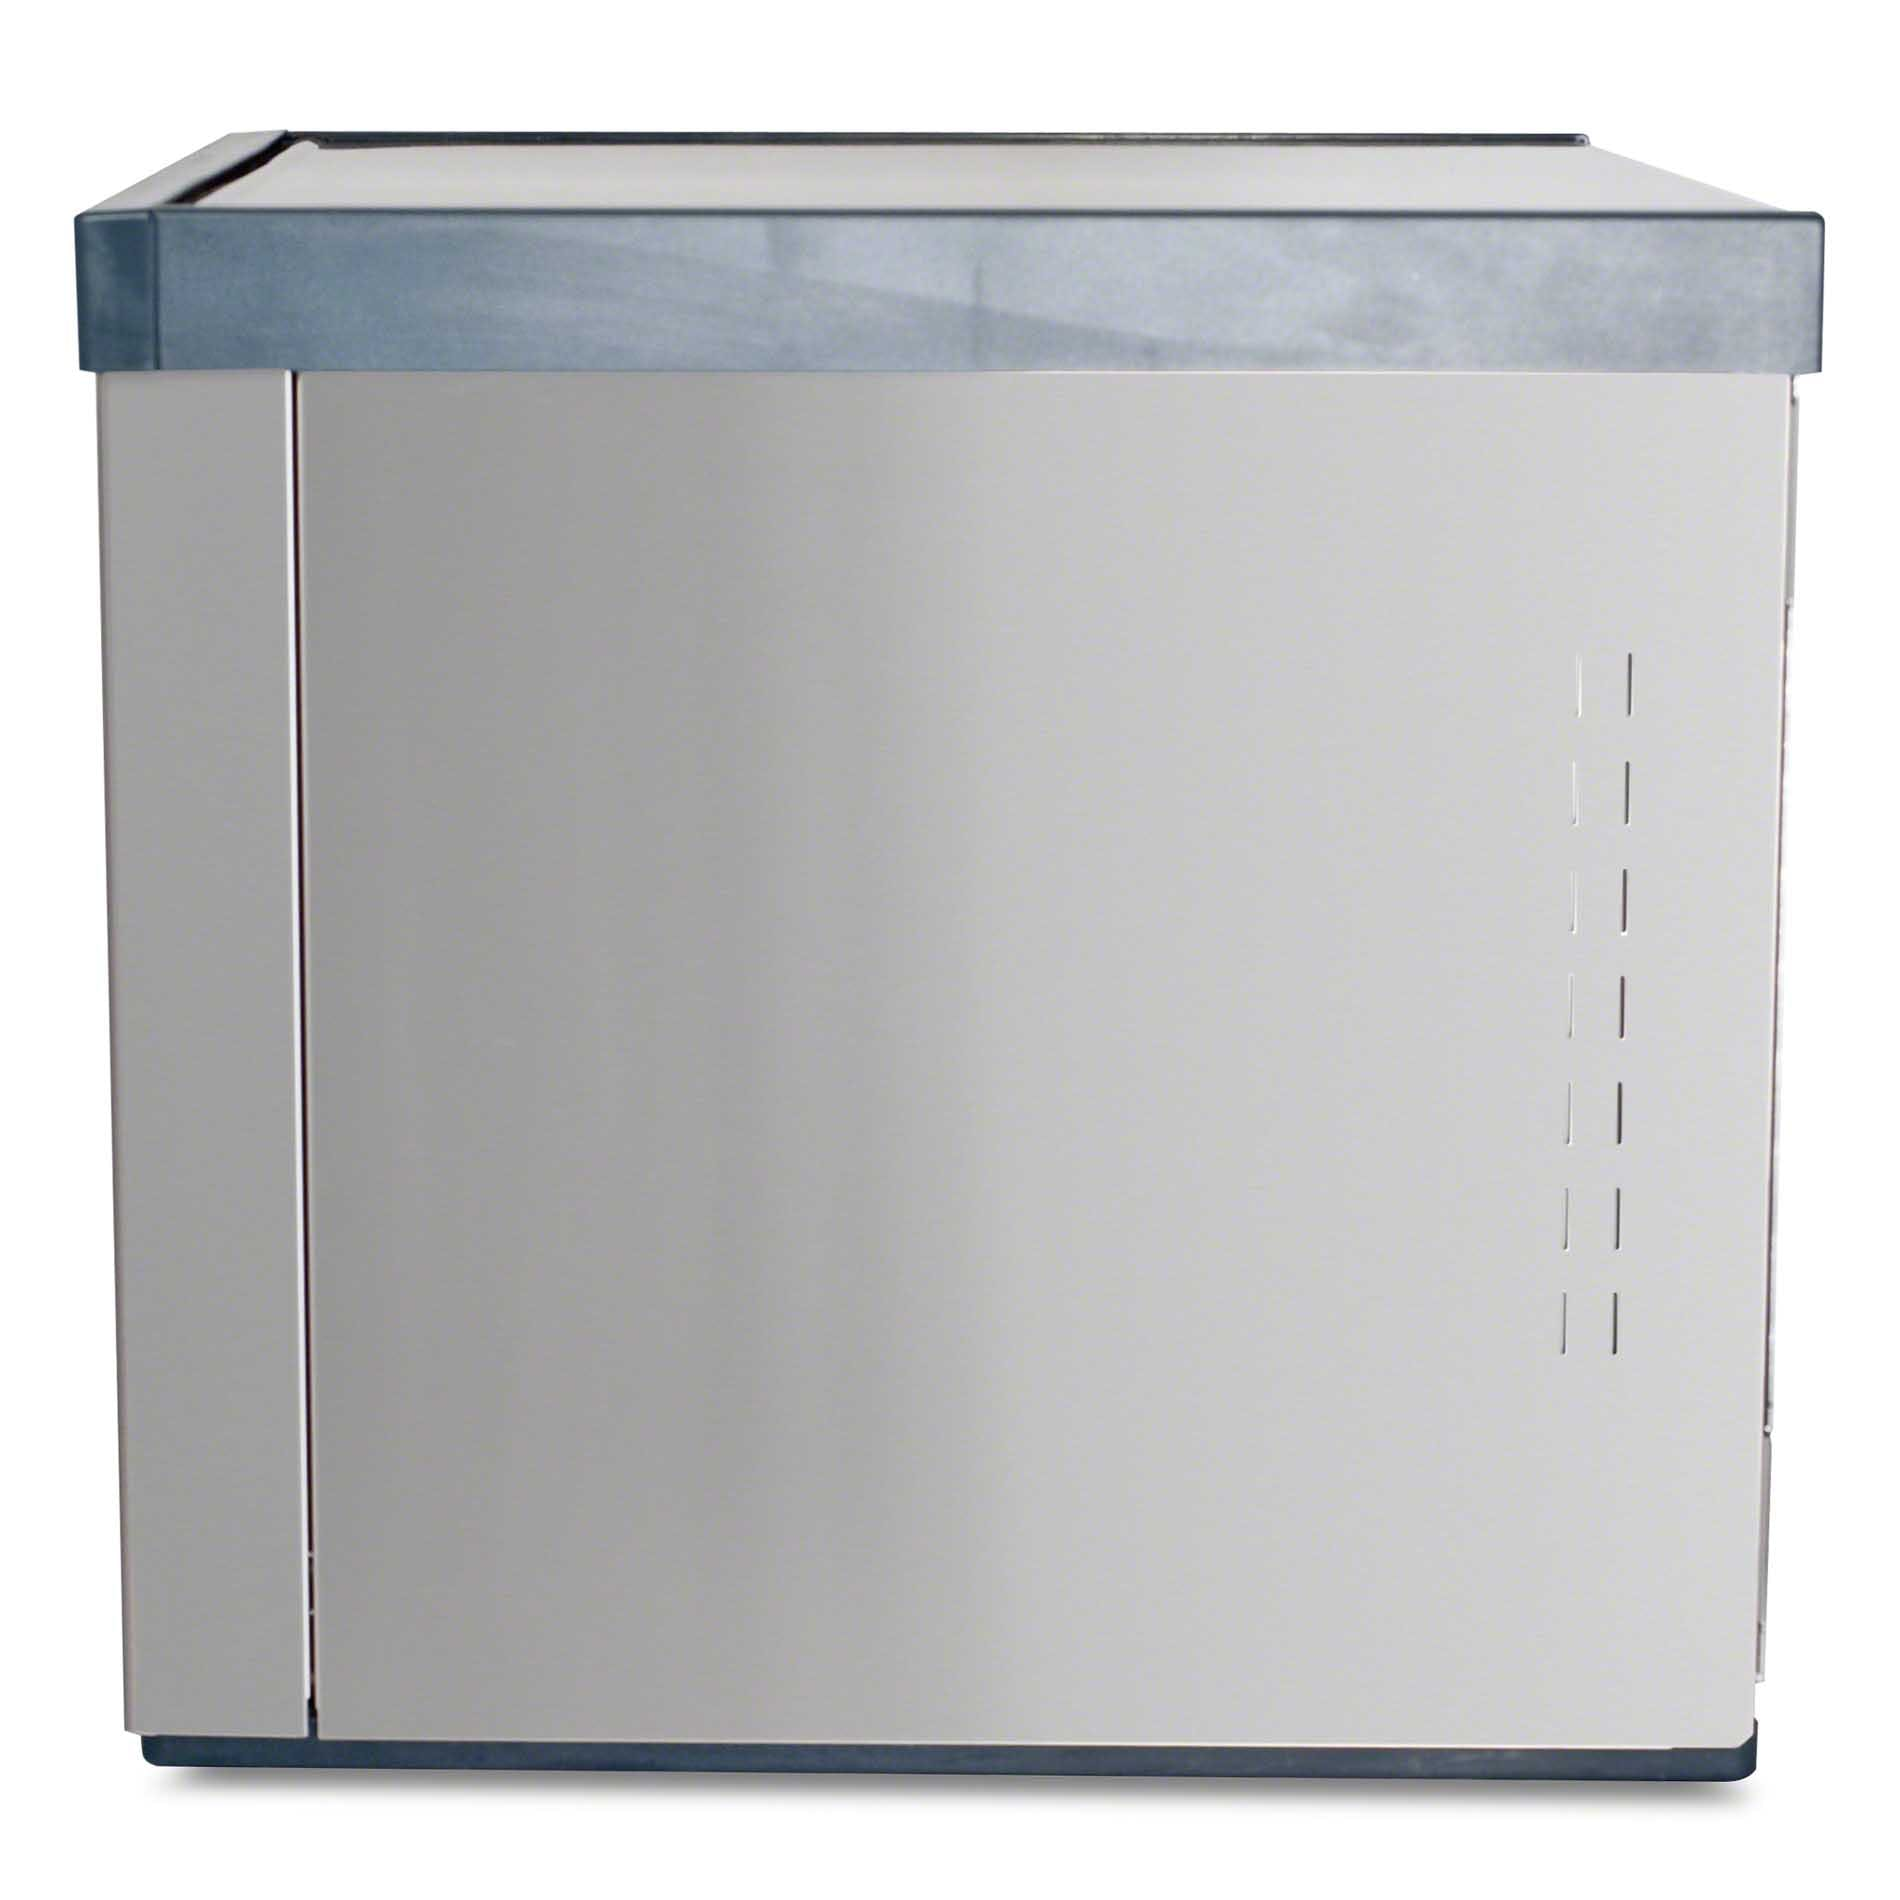 Scotsman - C0530MA-1A 562 lb Full Size Cube Ice Machine - Prodigy Series - sold by Food Service Warehouse